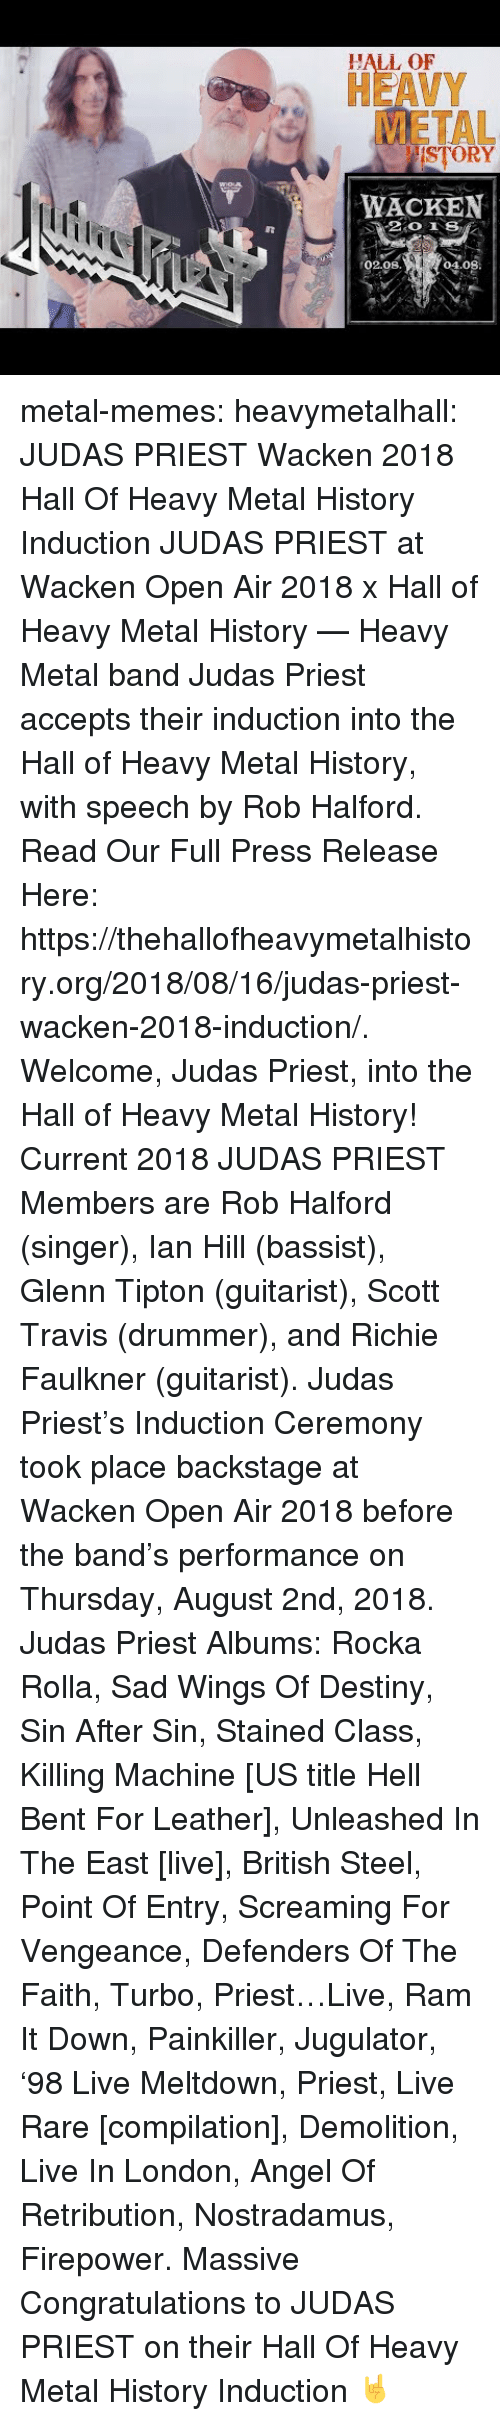 induction: HALL OF  HEAVY  METAL  ISTORY  WACKEN  02.08  04.08 metal-memes:  heavymetalhall:  JUDAS PRIEST Wacken 2018 Hall Of Heavy Metal History Induction JUDAS PRIEST at Wacken Open Air 2018 x Hall of Heavy Metal History — Heavy Metal band Judas Priest accepts their induction into the Hall of Heavy Metal History, with speech by Rob Halford.   Read Our Full Press Release Here: https://thehallofheavymetalhistory.org/2018/08/16/judas-priest-wacken-2018-induction/.   Welcome, Judas Priest, into the Hall of Heavy Metal History!   Current 2018 JUDAS PRIEST Members are Rob Halford (singer), Ian Hill (bassist), Glenn Tipton (guitarist), Scott Travis (drummer), and Richie Faulkner (guitarist).  Judas Priest's Induction Ceremony took place backstage at Wacken Open Air 2018 before the band's performance on Thursday, August 2nd, 2018.   Judas Priest Albums: Rocka Rolla, Sad Wings Of Destiny, Sin After Sin, Stained Class, Killing Machine [US title Hell Bent For Leather], Unleashed In The East [live], British Steel, Point Of Entry, Screaming For Vengeance, Defenders Of The Faith, Turbo, Priest…Live, Ram It Down, Painkiller, Jugulator, '98 Live Meltdown, Priest, Live  Rare [compilation], Demolition, Live In London, Angel Of Retribution, Nostradamus, Firepower.  Massive Congratulations to JUDAS PRIEST on their Hall Of Heavy Metal History Induction 🤘